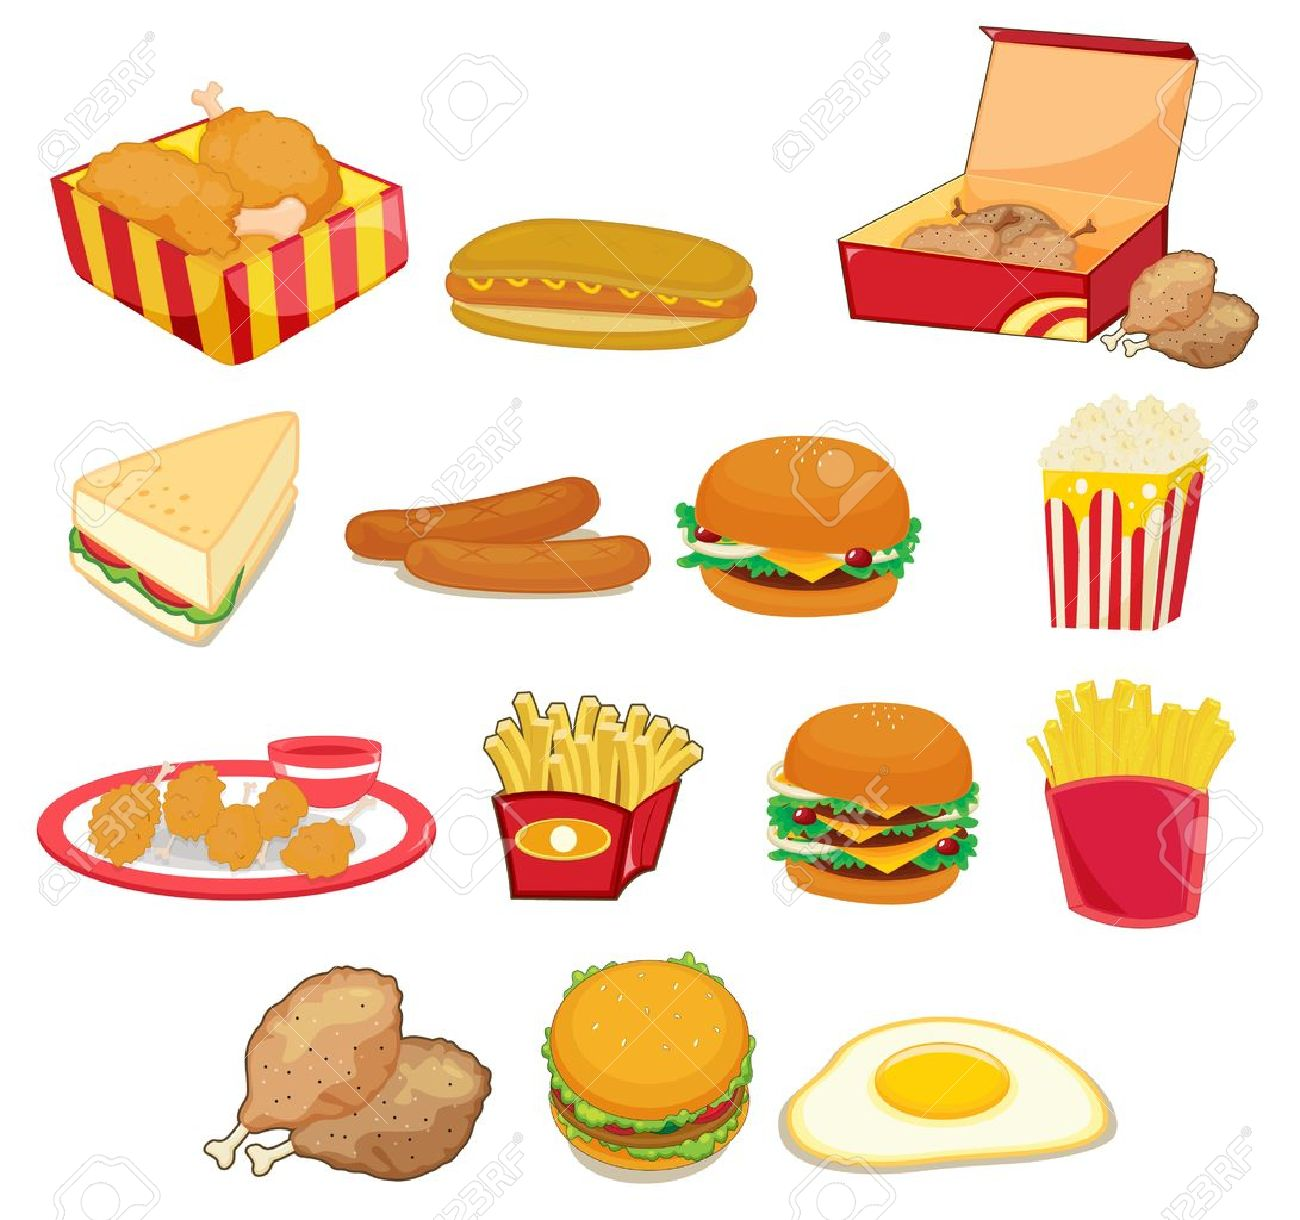 Illustration Of Junk Food On W Royalty Free Cliparts, Vectors, And.